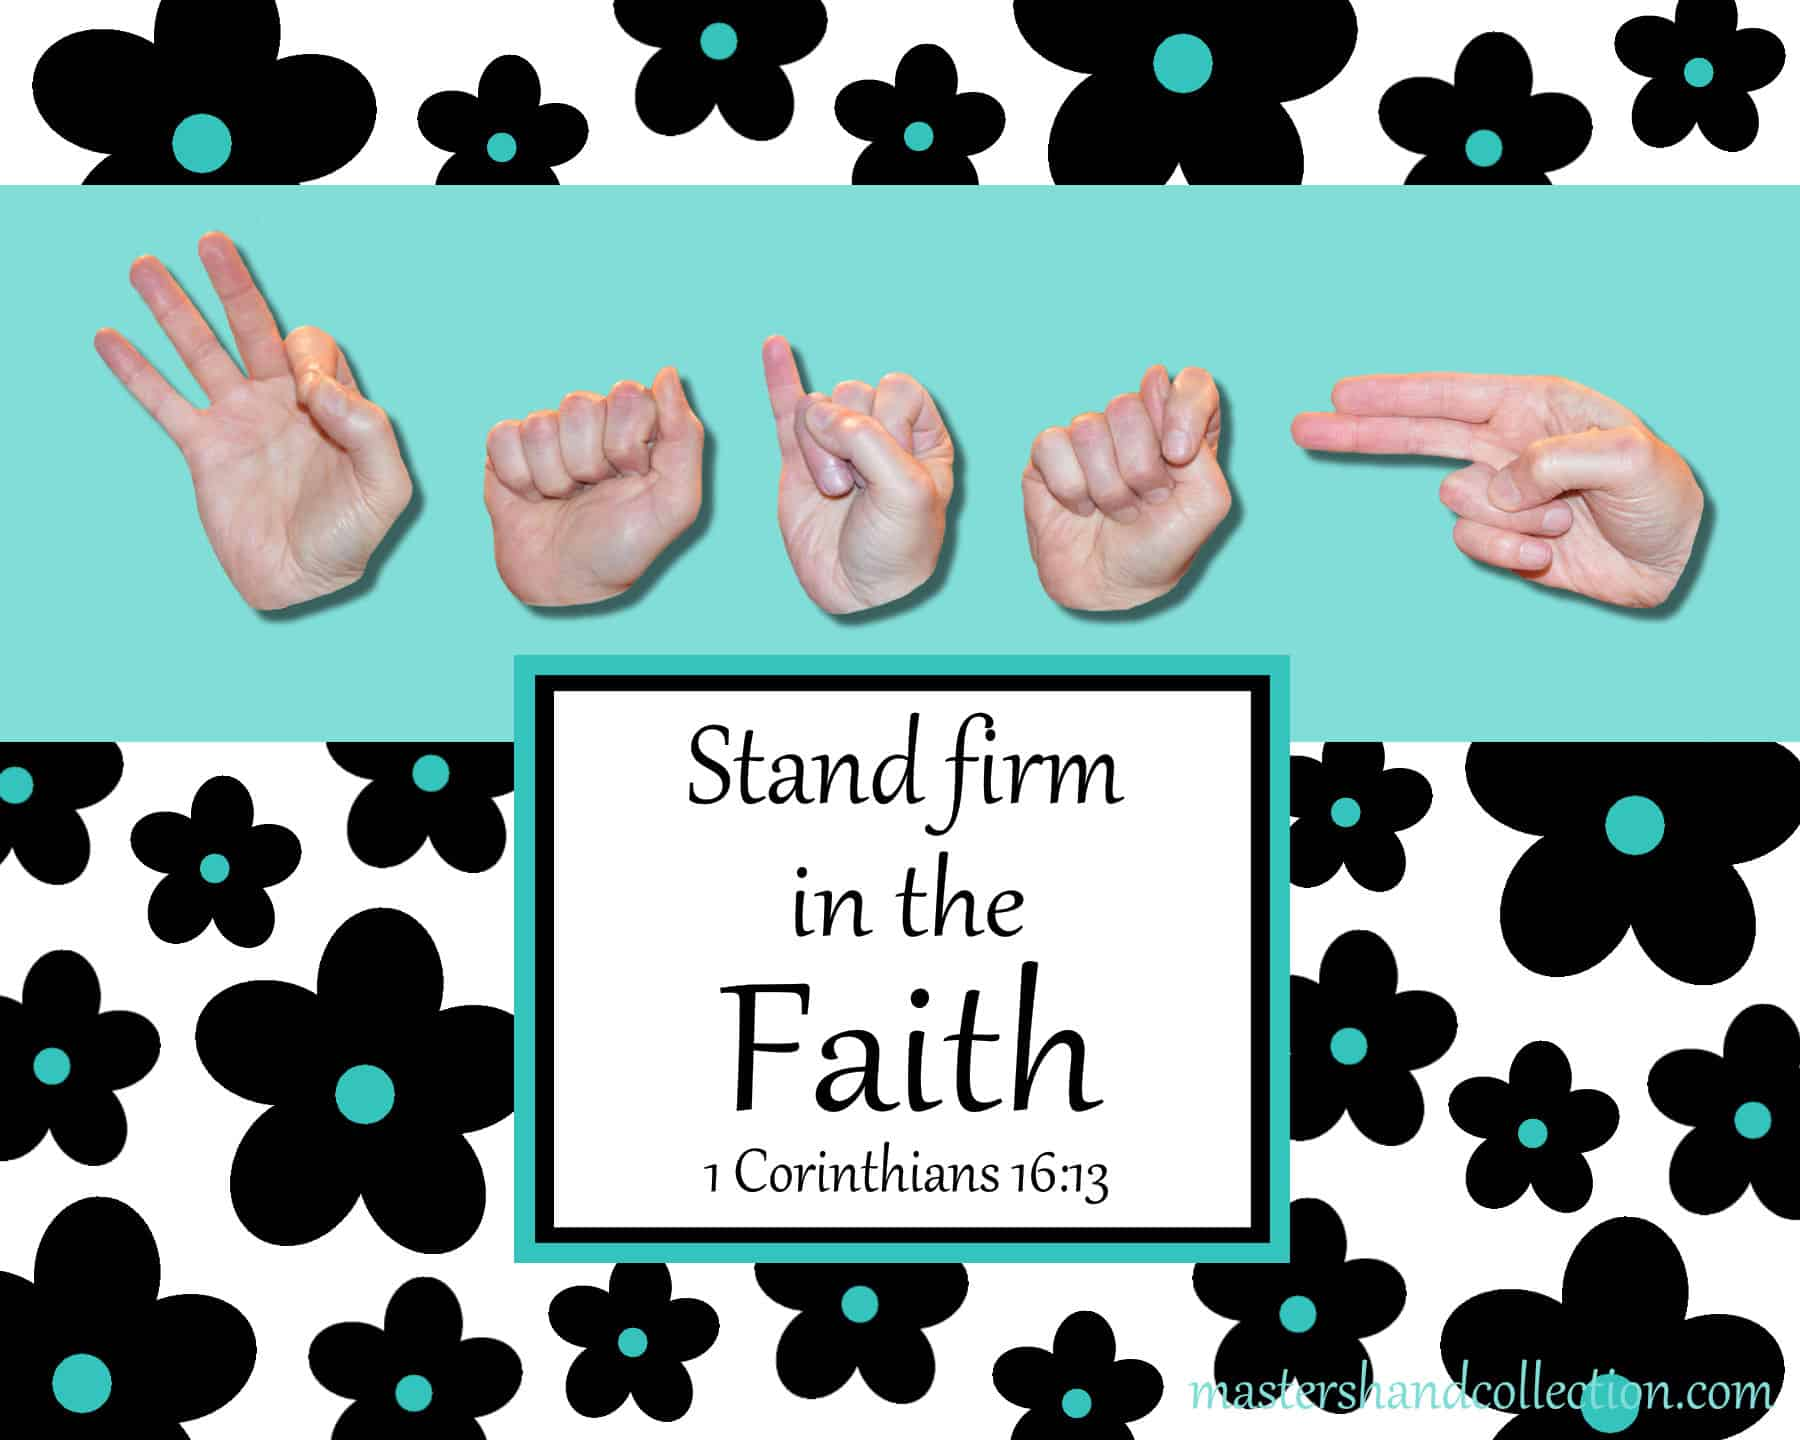 artwork titled Faith B&W Graphic by Master's Hand Collection